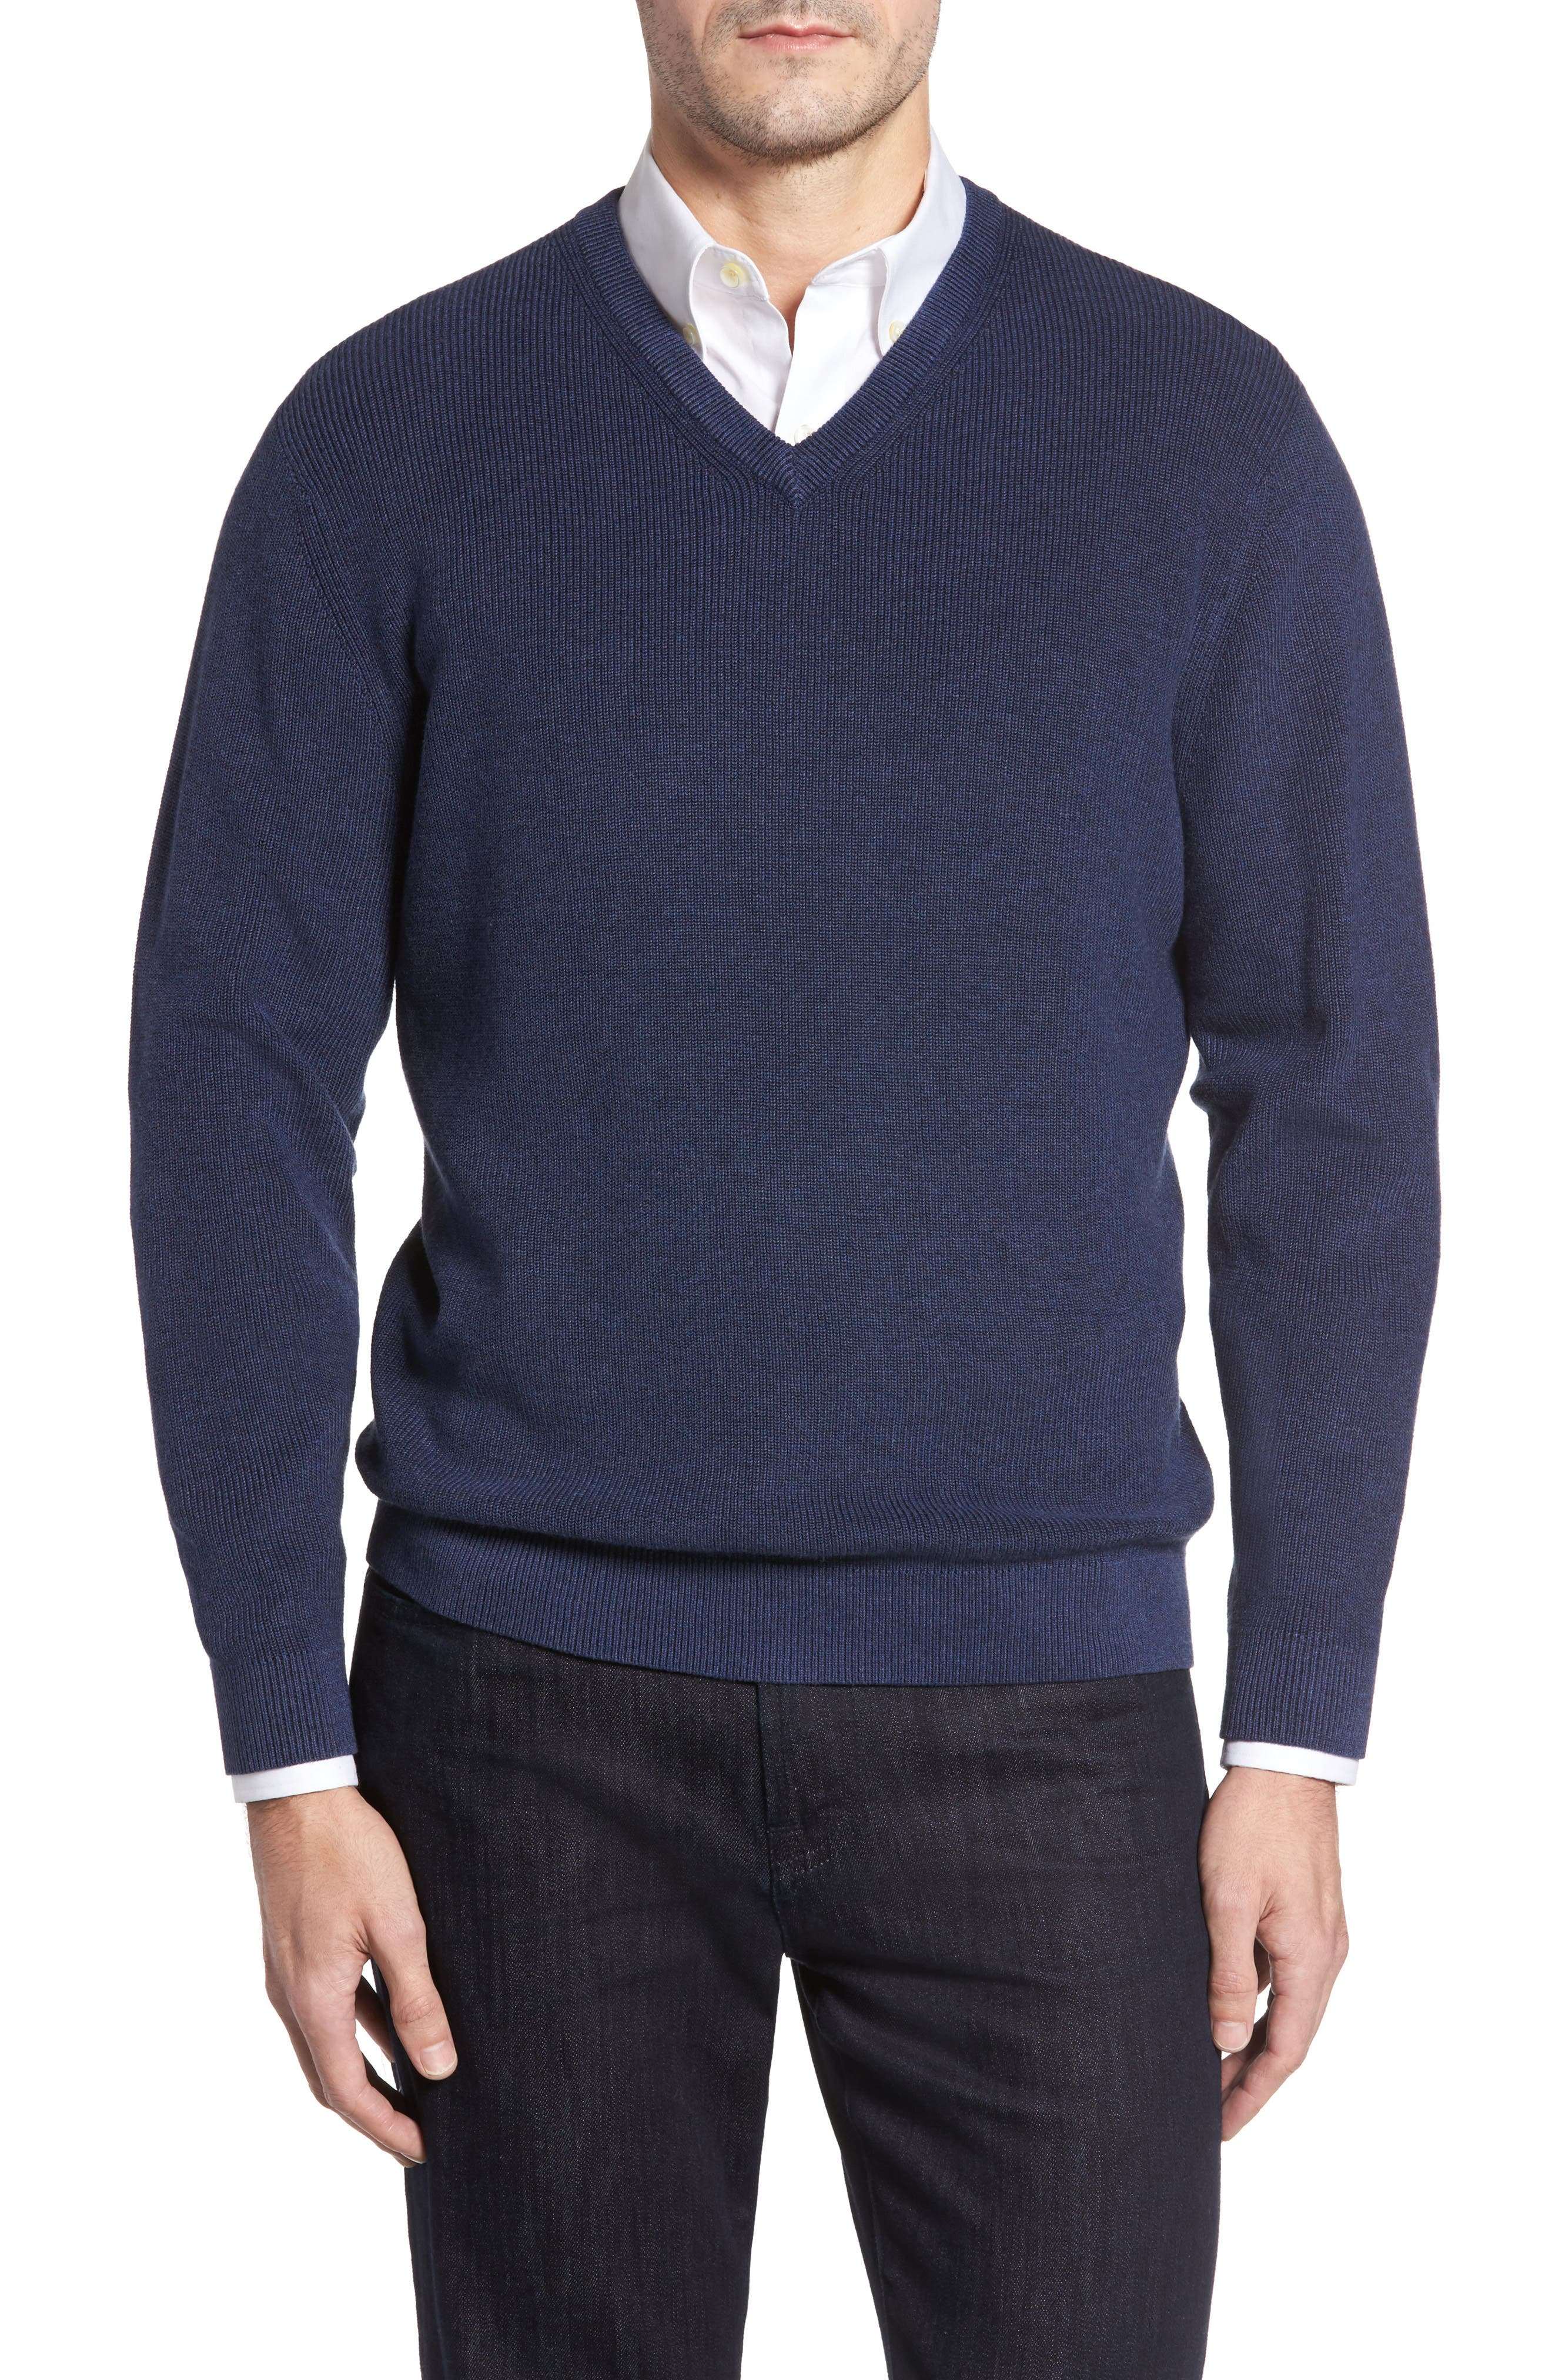 Main Image - Tommy Bahama Las Palmas Reversible Sweater